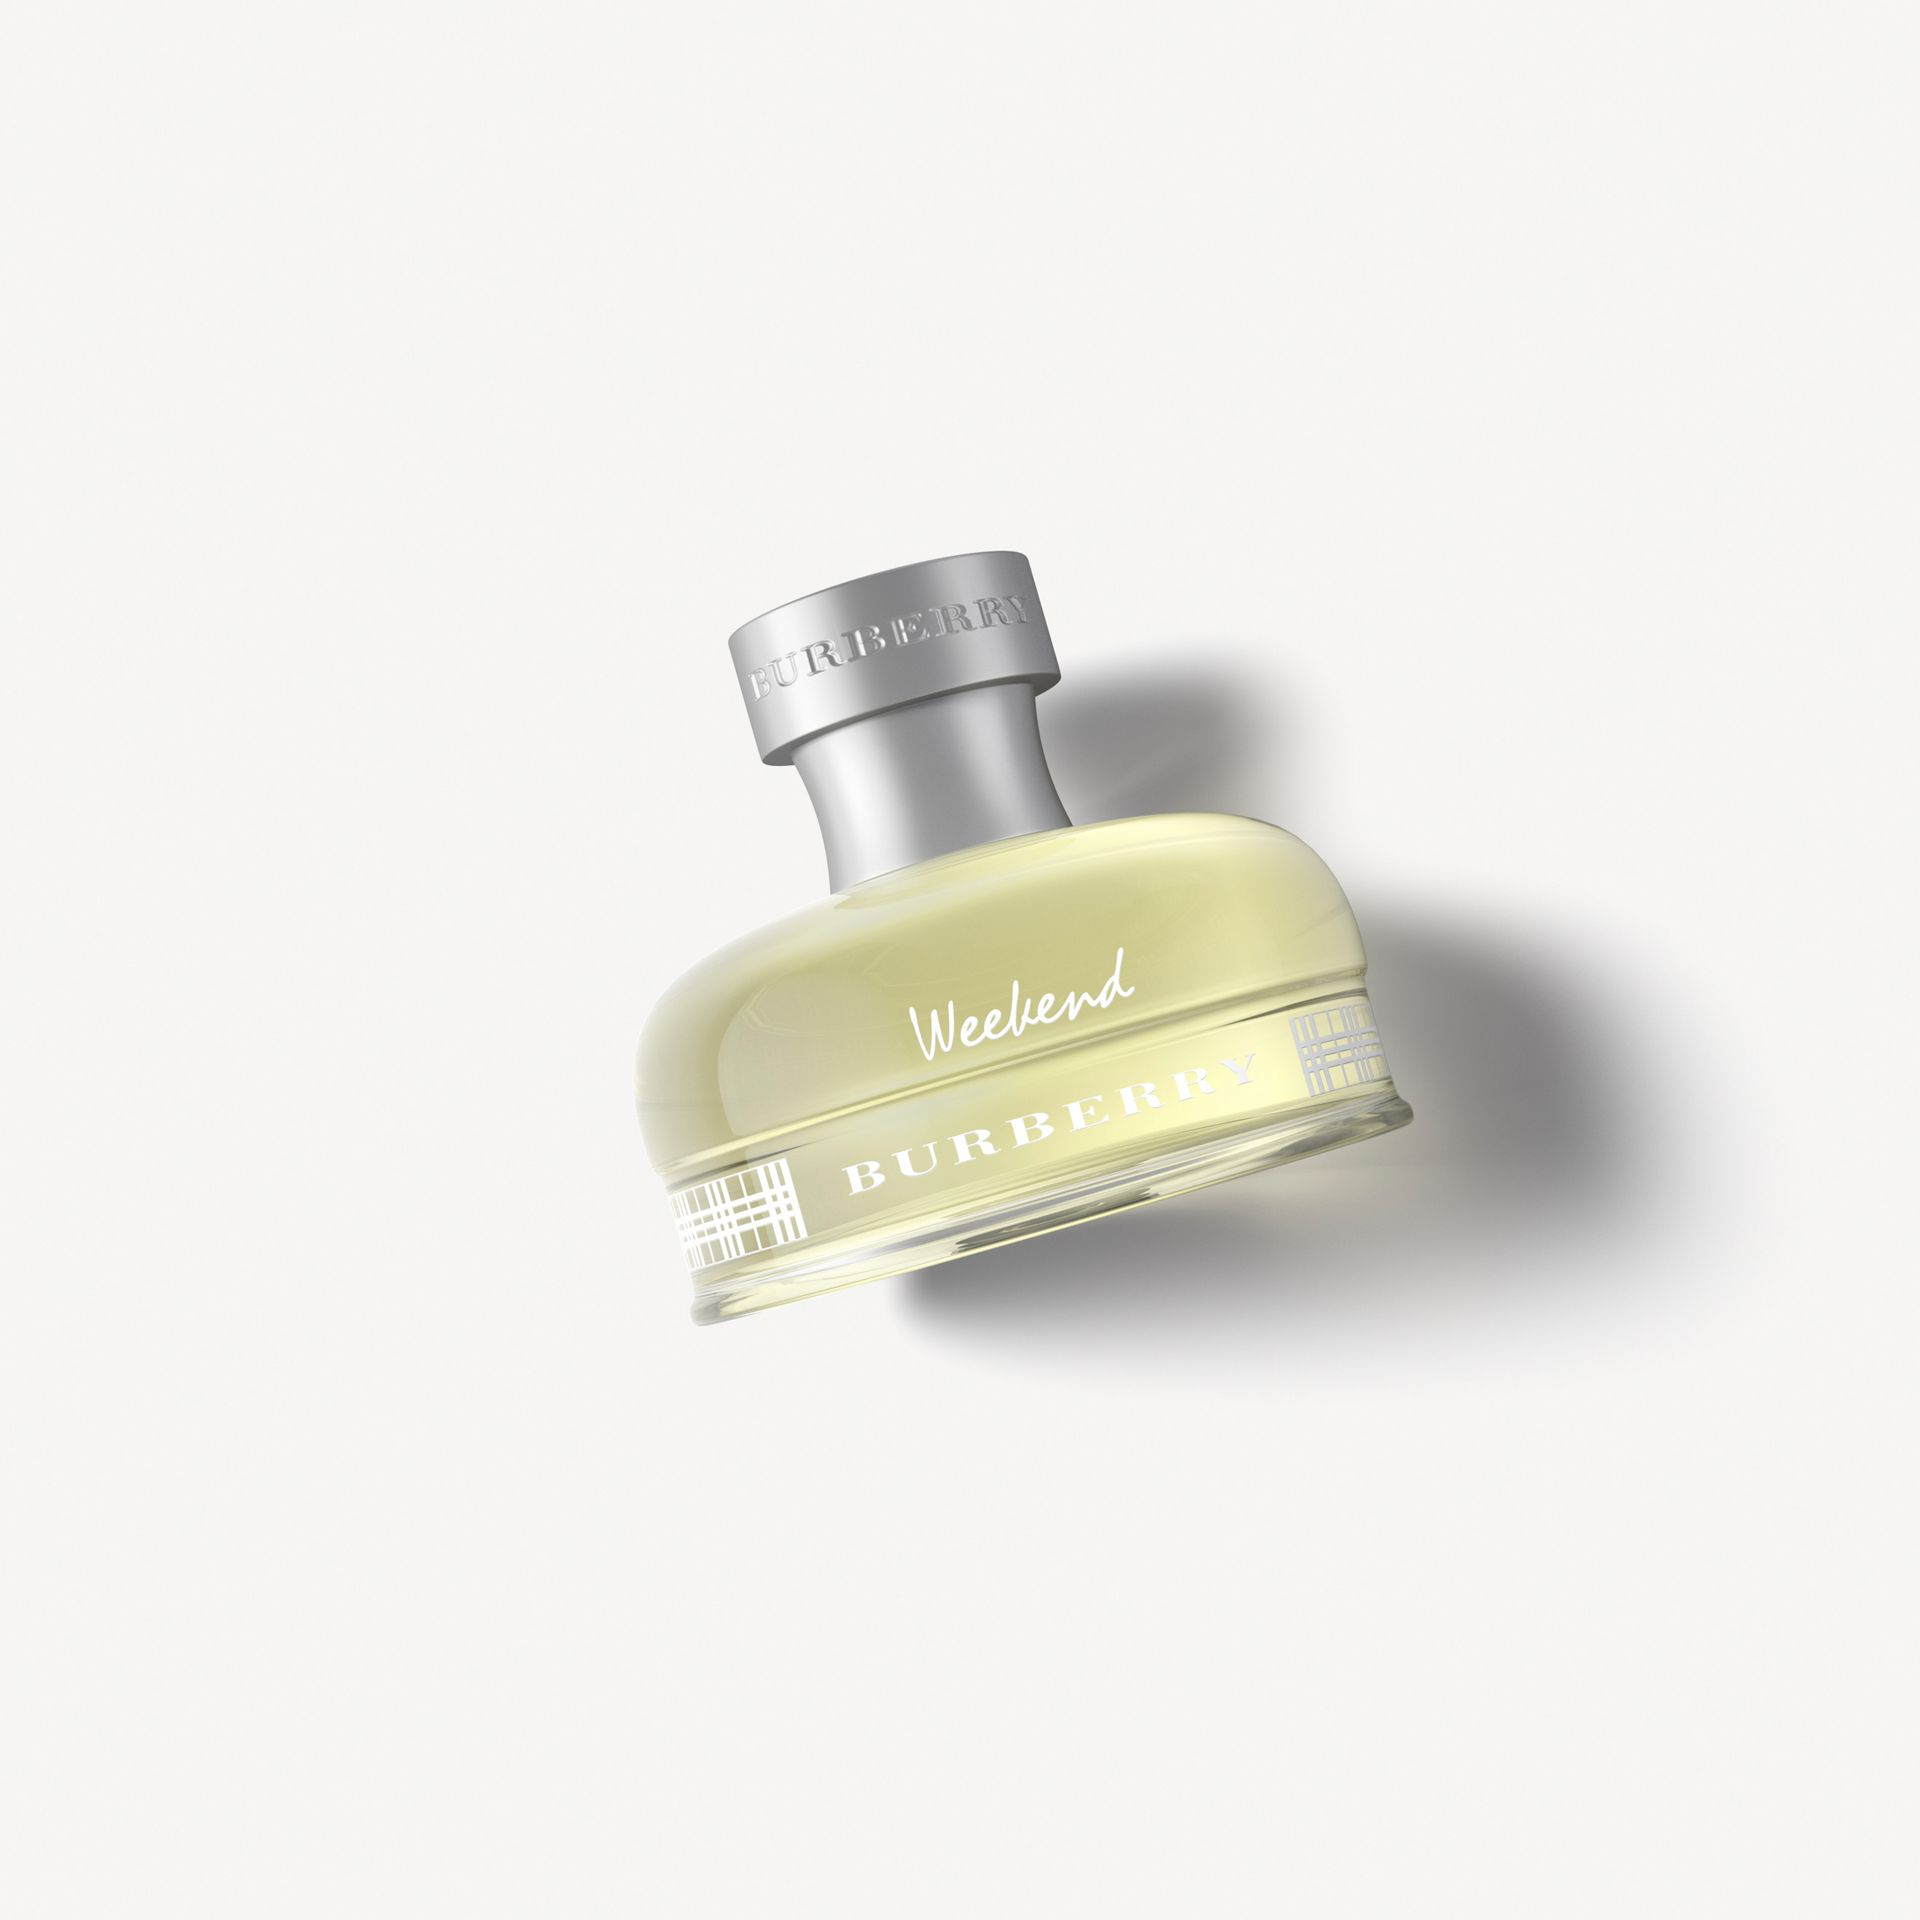 Burberry Weekend Eau de Parfum 50ml - gallery image 1